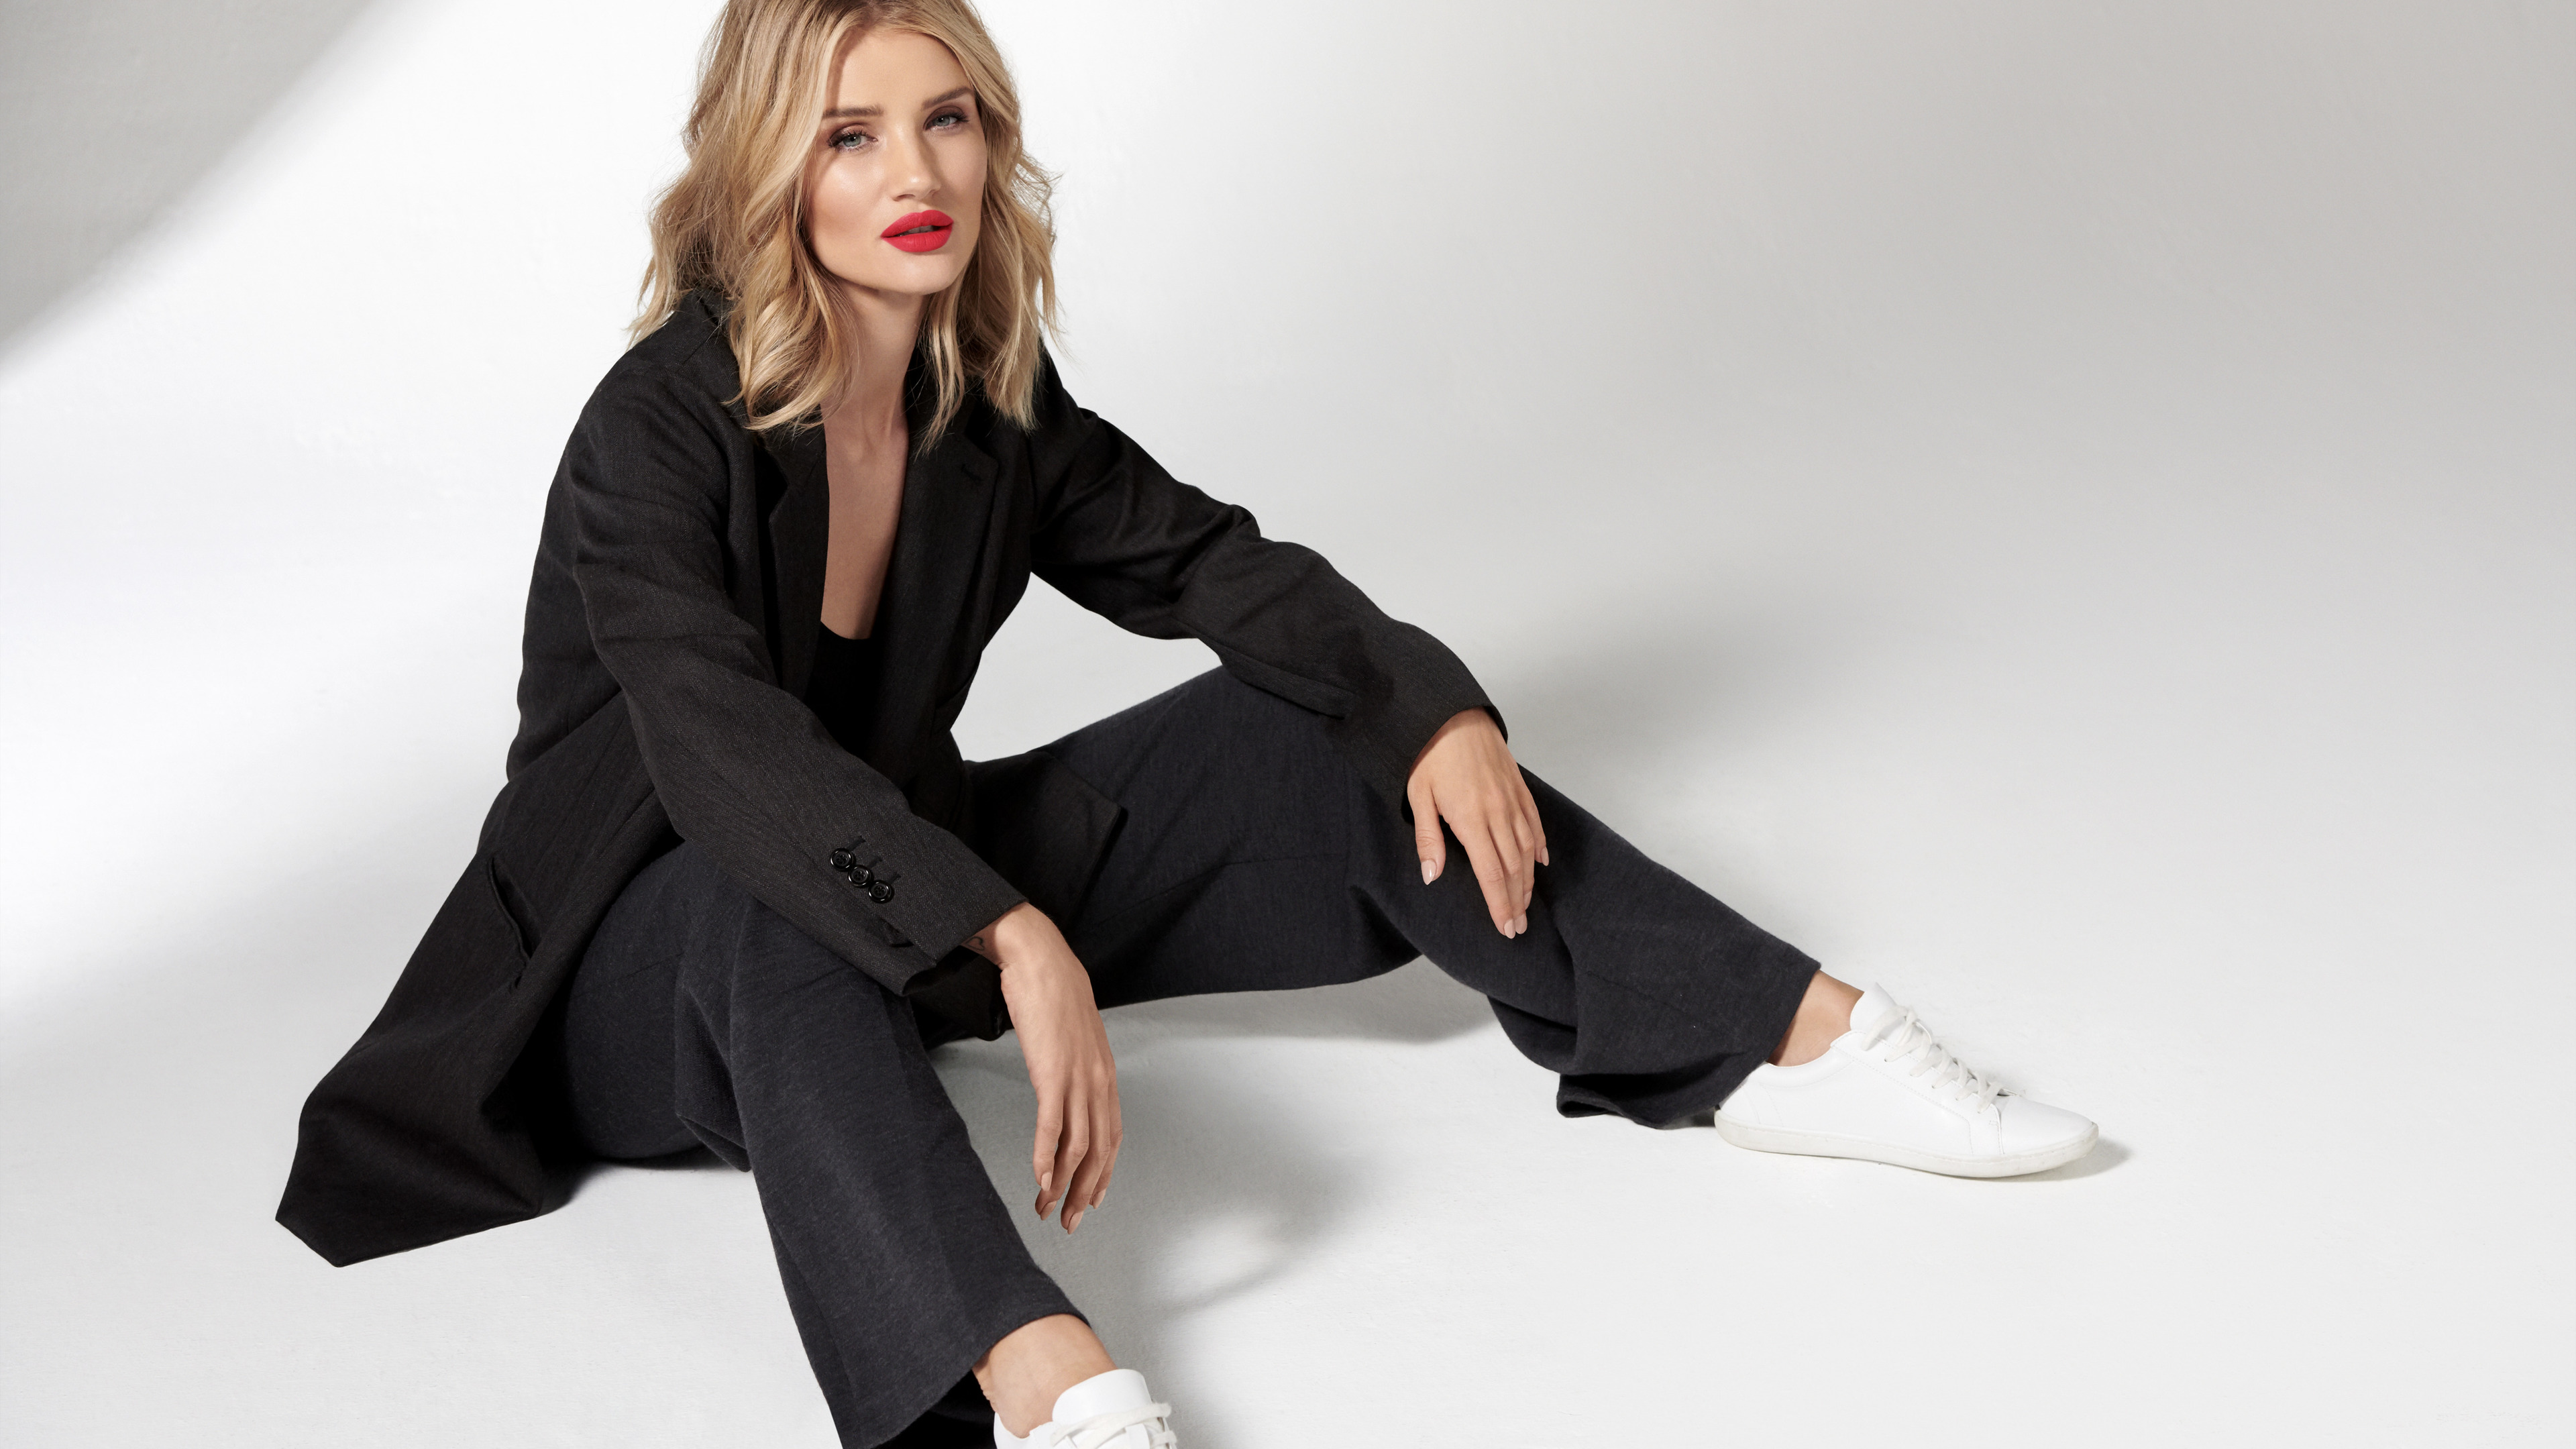 rosie huntington whiteley 4k 2018 1542236195 - Rosie Huntington Whiteley 4k 2018 - rosie huntington whiteley wallpapers, hd-wallpapers, girls wallpapers, celebrities wallpapers, 4k-wallpapers